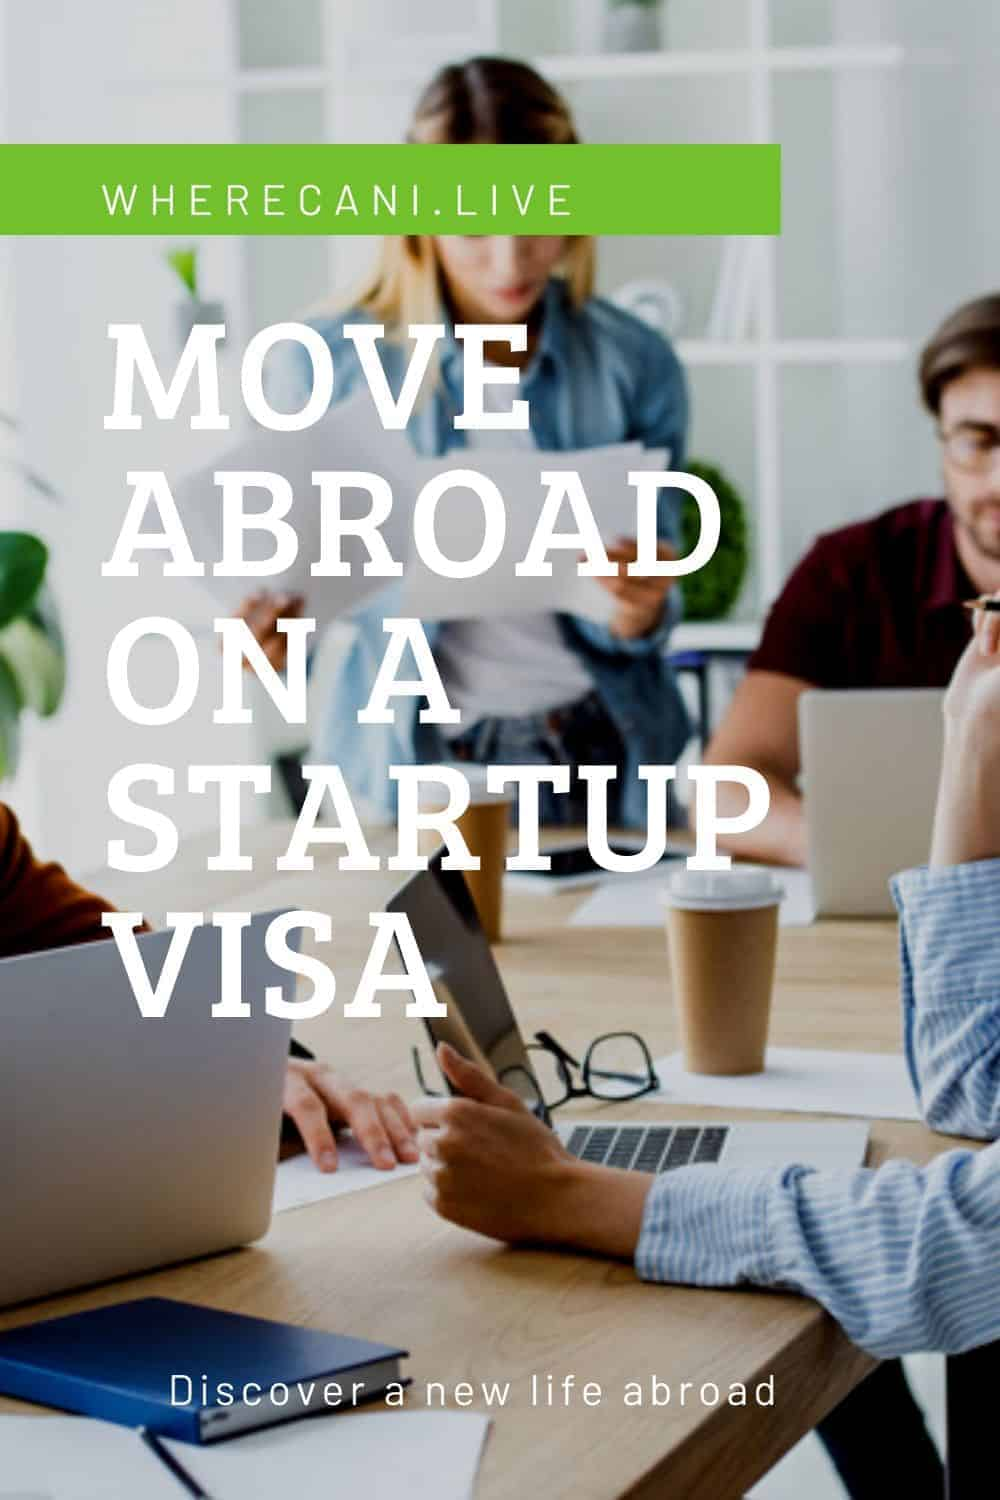 If you have a great business idea, you should think about takeing advantage of the startup visas around the world #startup #visas #expat #opportunities #business via @wherecanilive